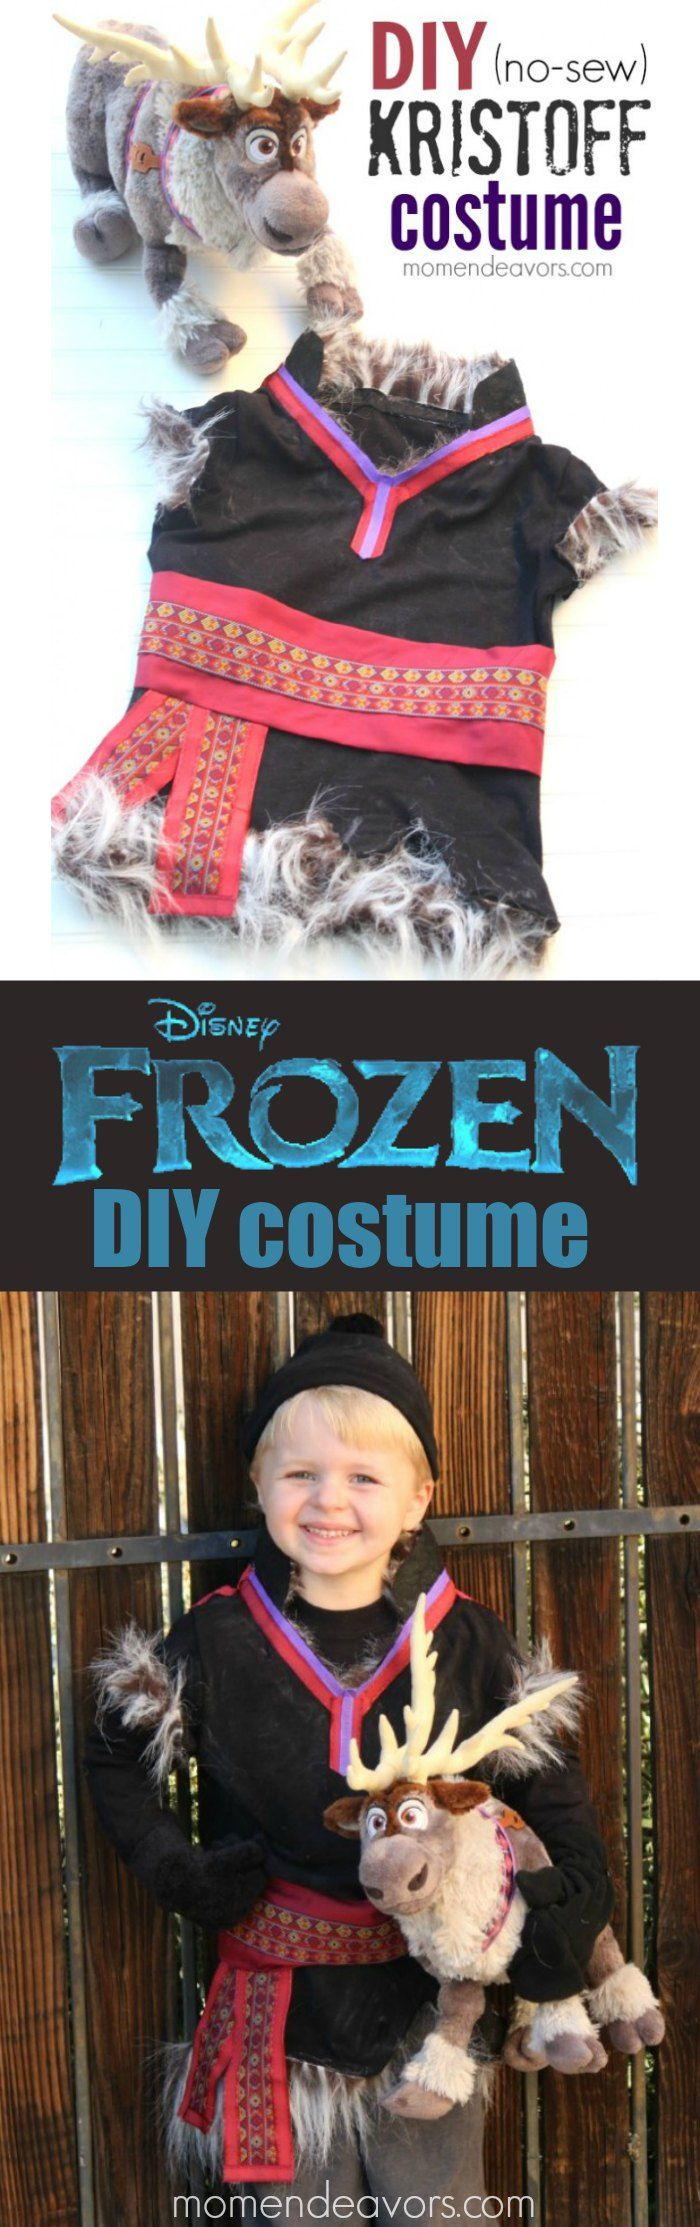 No-Sew DIY Disney FROZEN Kristoff Costume! Perfect Disney Halloween costume for boys!